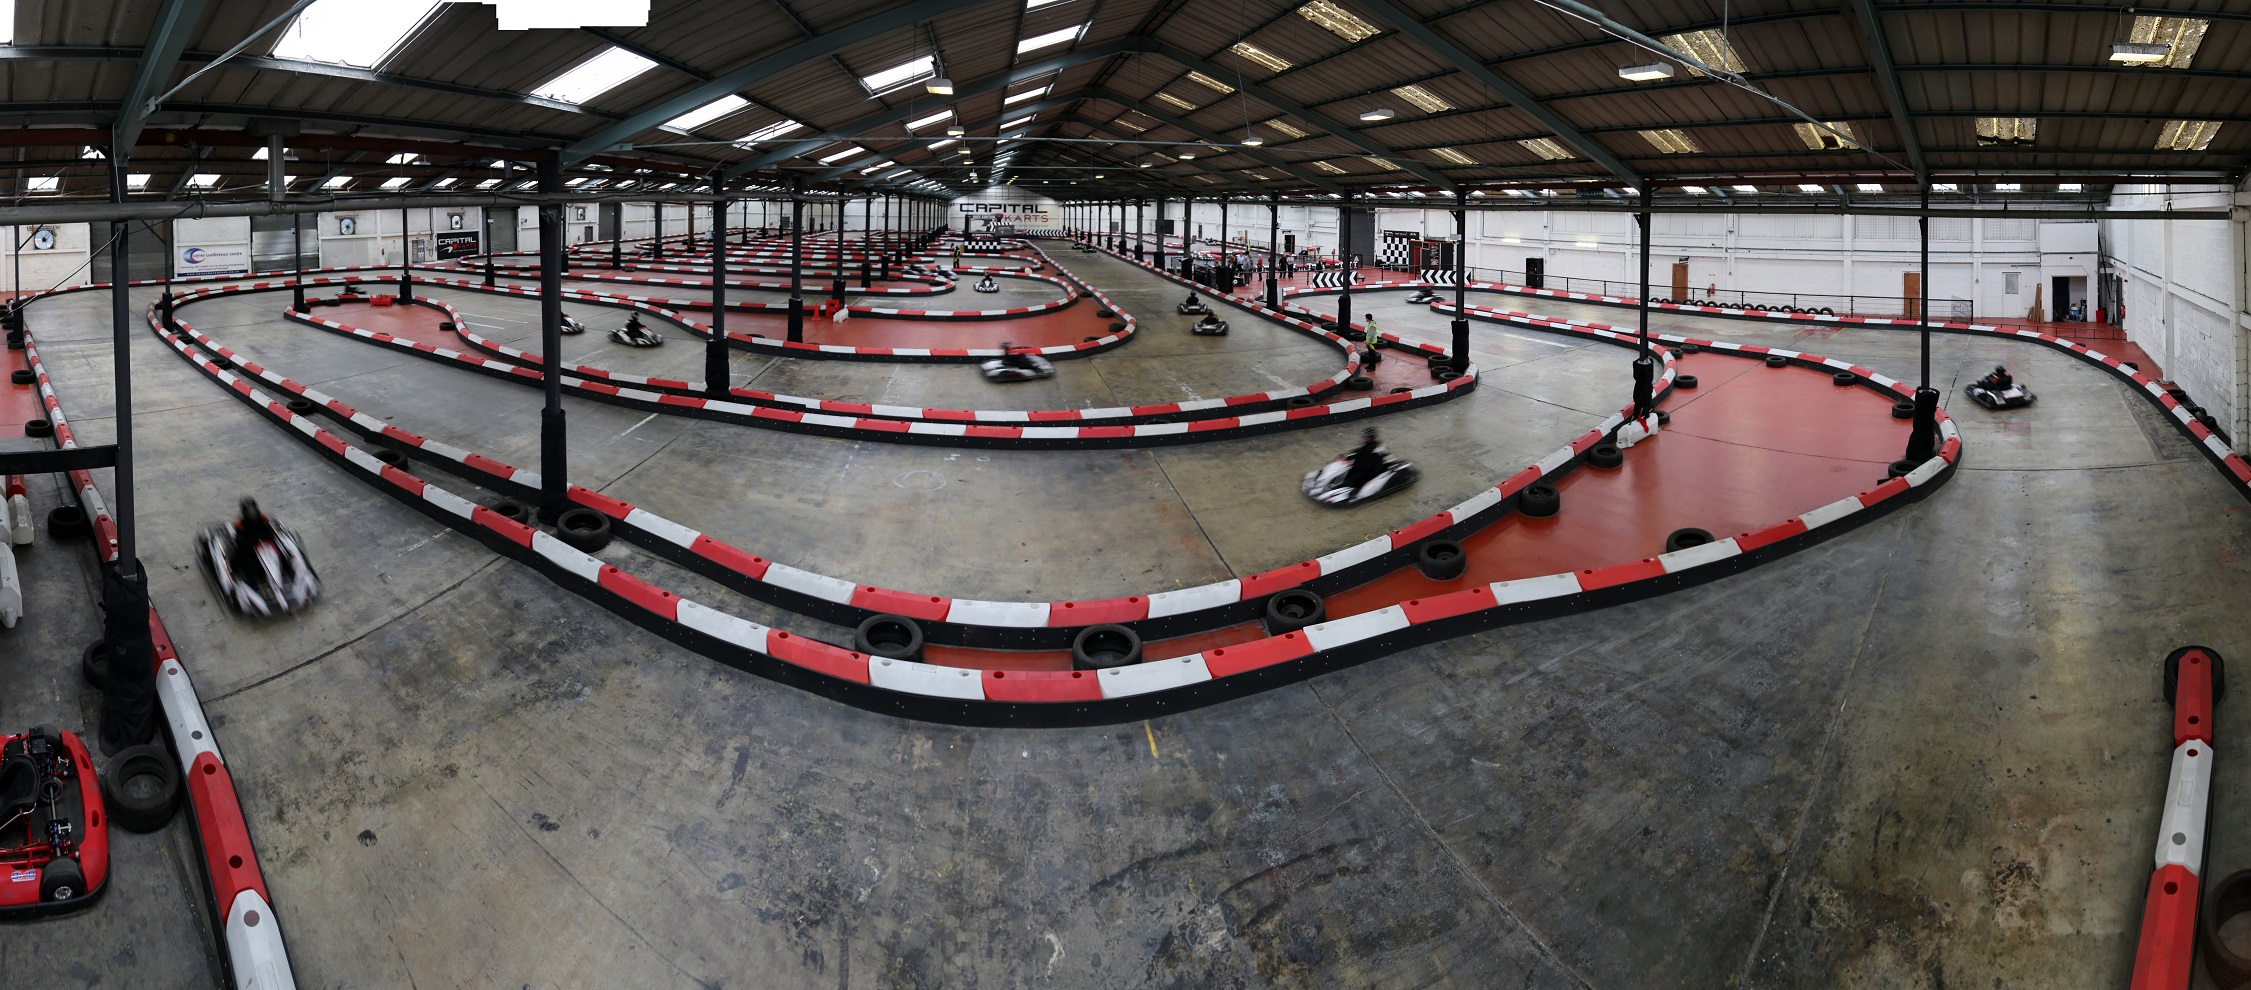 Are Go Karts Open In Winter At Myrtle Beach